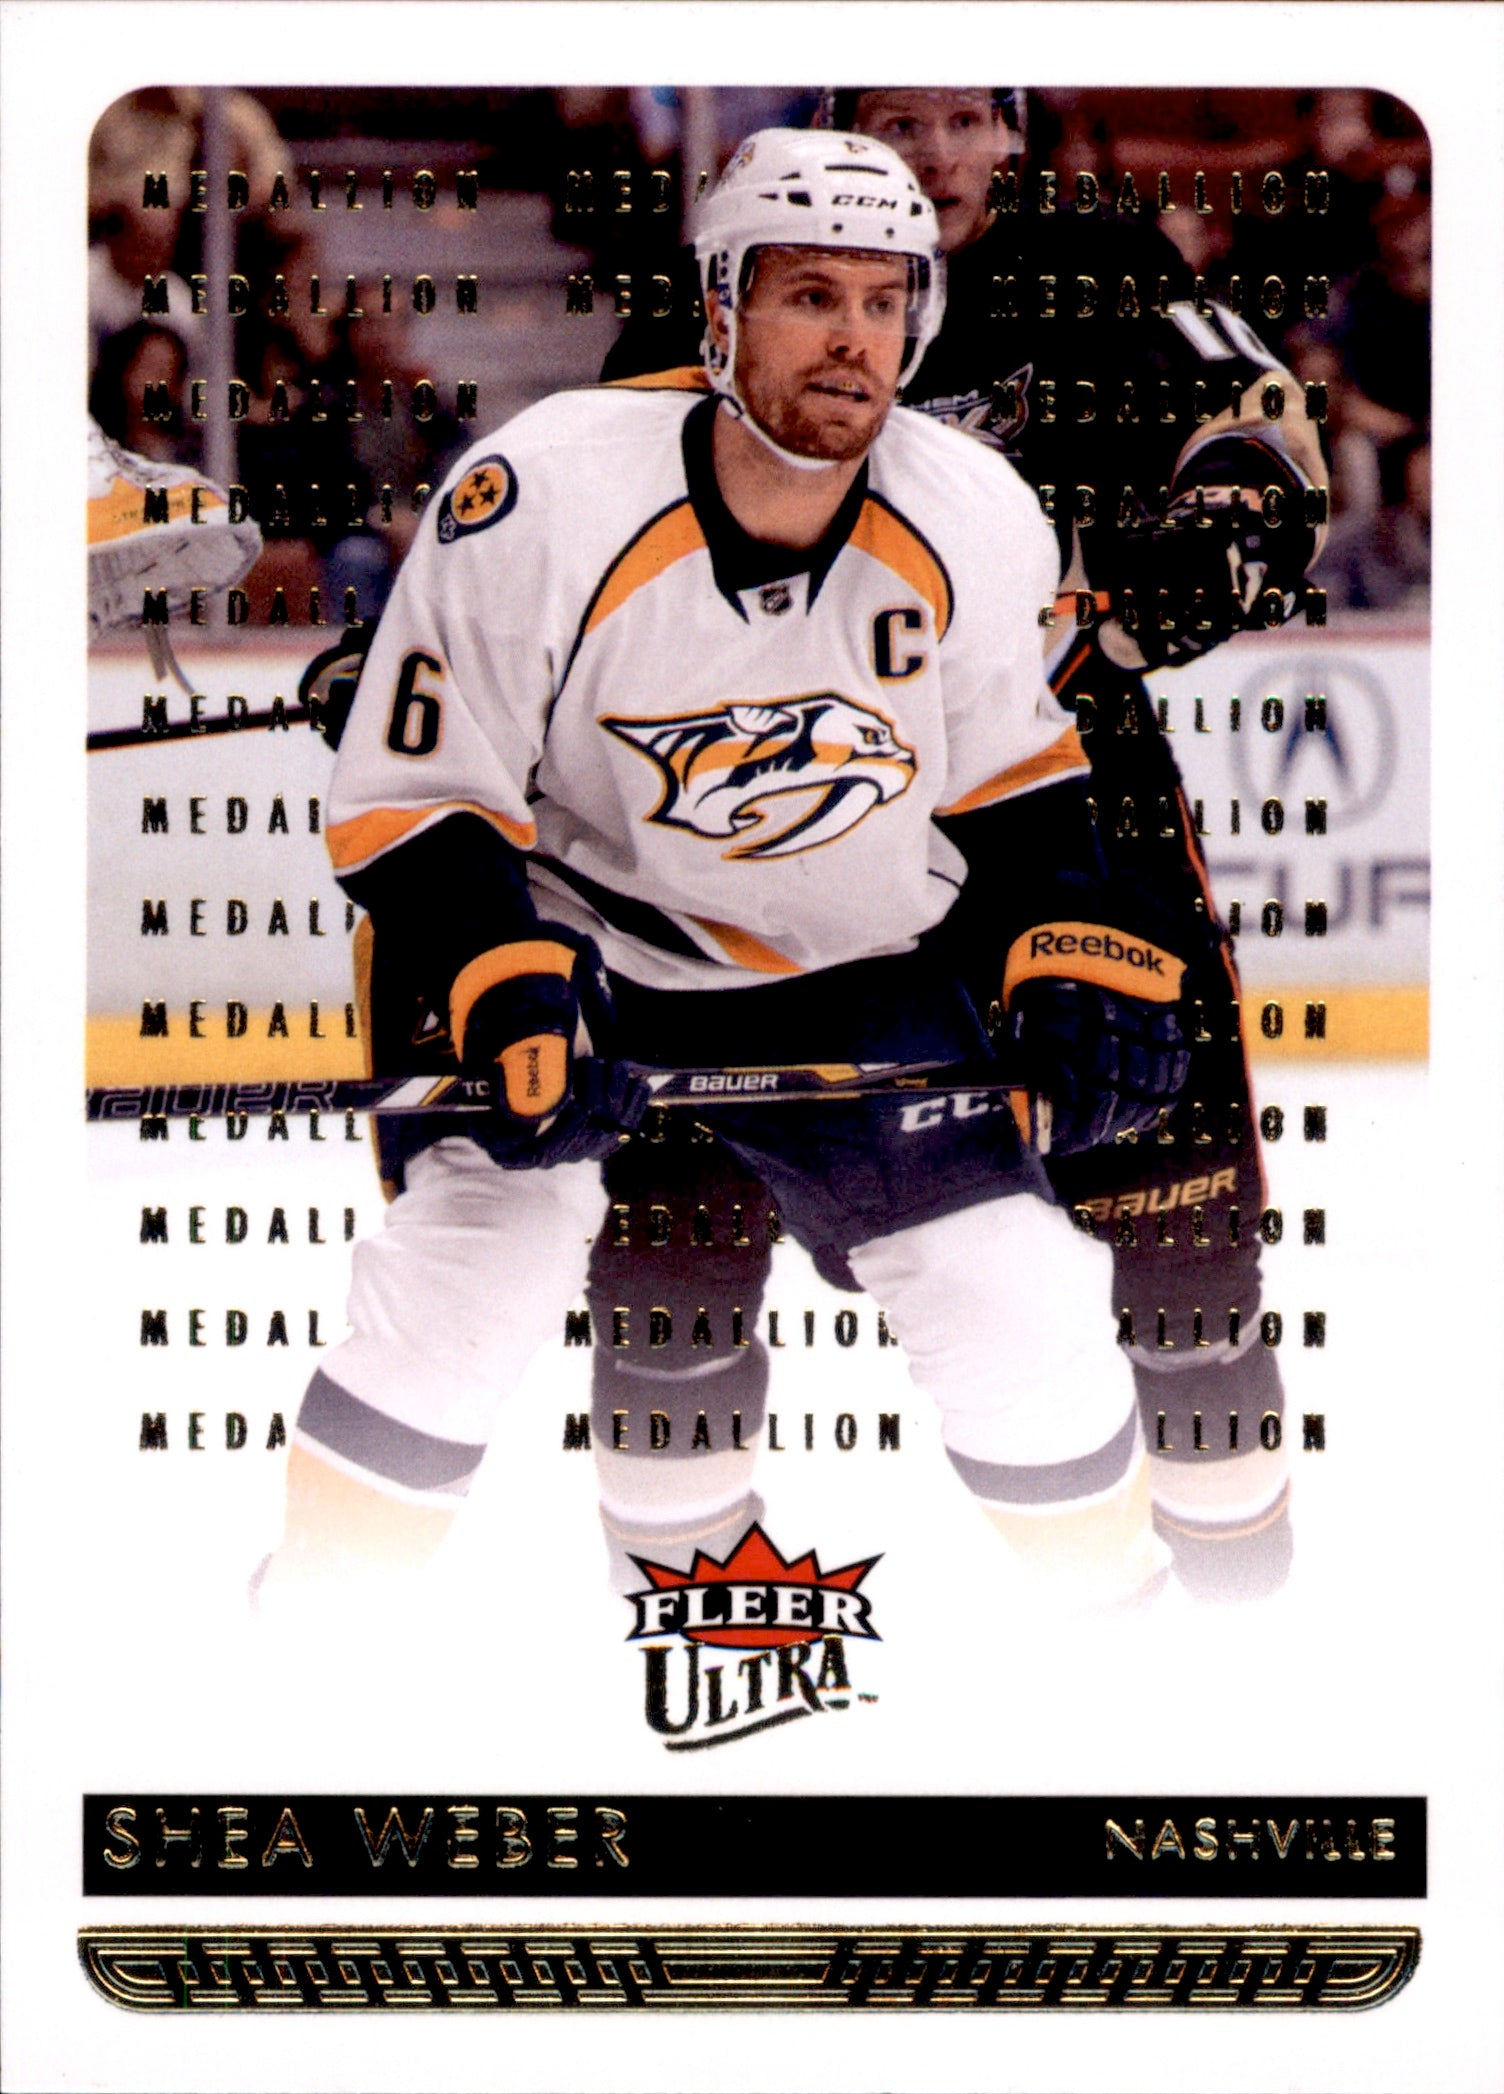 2014-15 Fleer Ultra Gold Medallion #105 Shea Weber | Eastridge Sports Cards